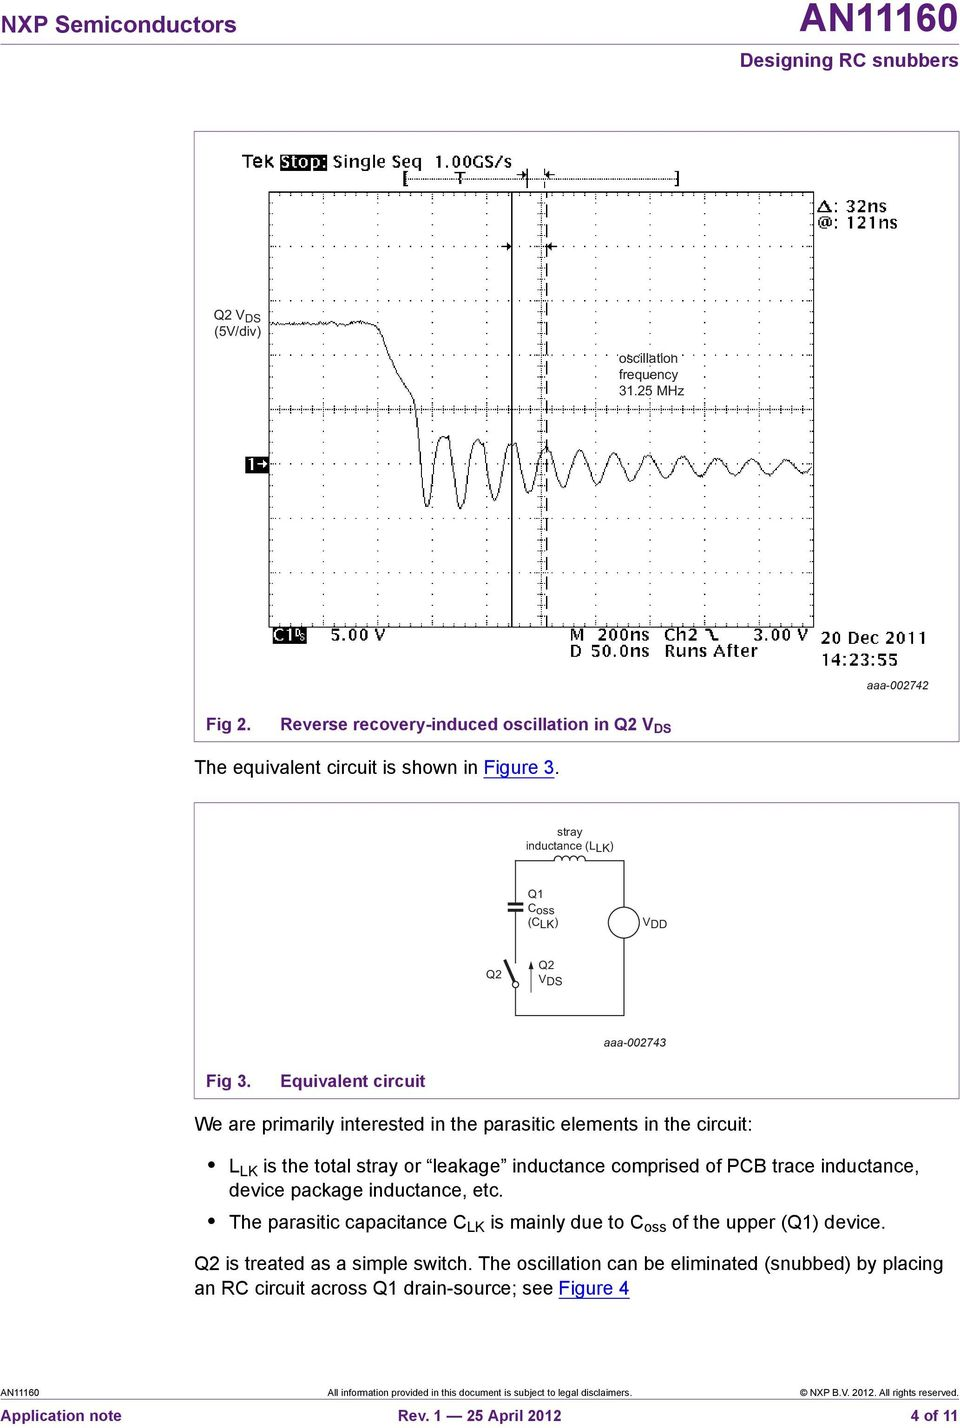 An Designing Rc Snubbers Pdf Snubber Circuits For Thyristor Control Single Switch Based On Equivalent Circuit We Are Primarily Interested In The Parasitic Elements L Lk